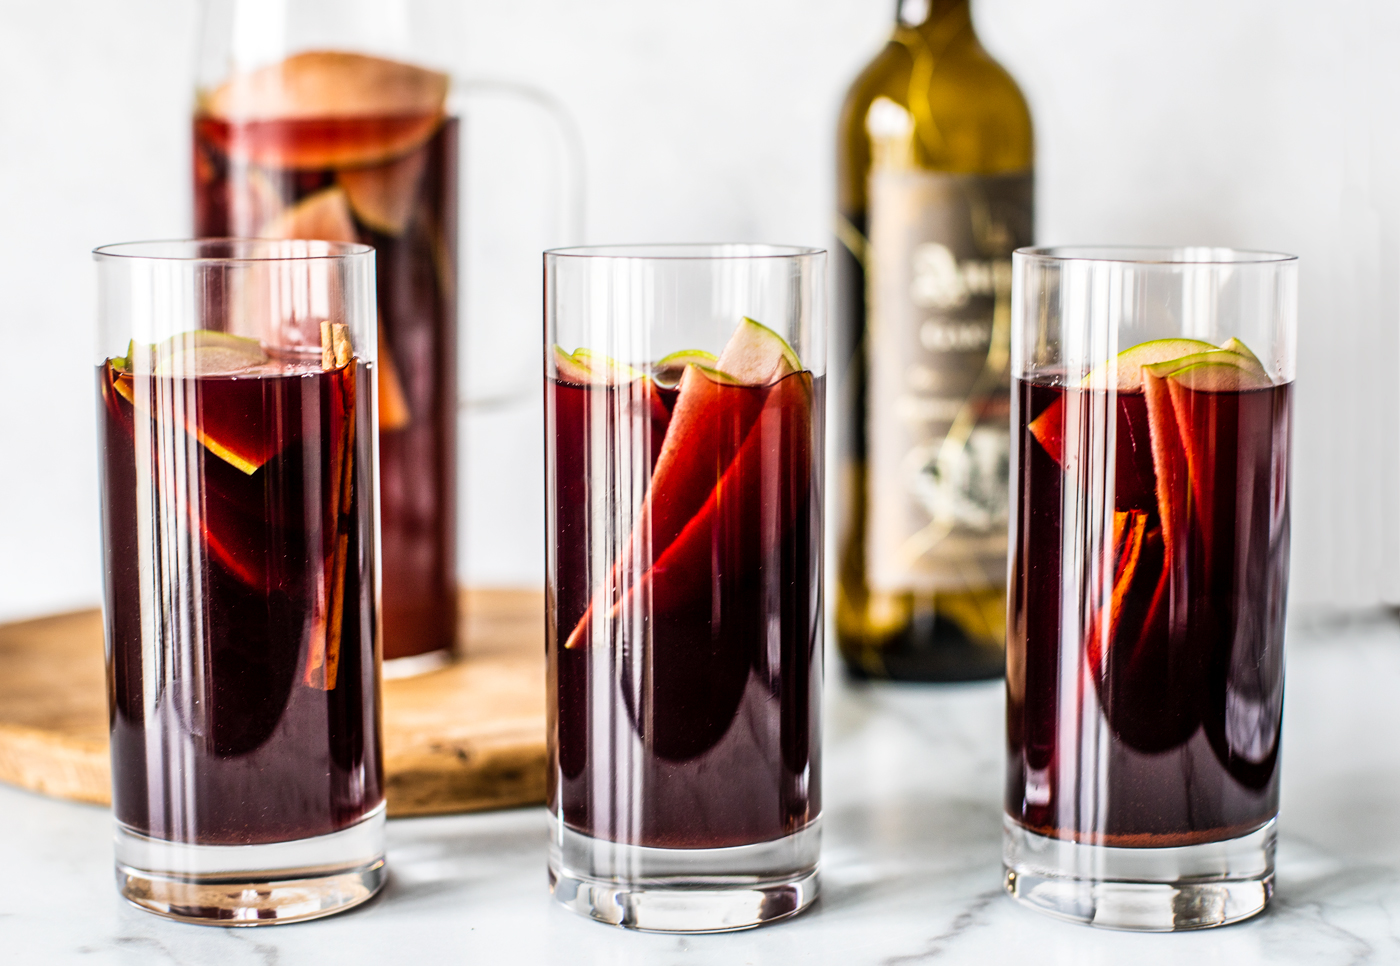 Three tall glasses of sangria with sliced green apples and cinnamon sticks in it.